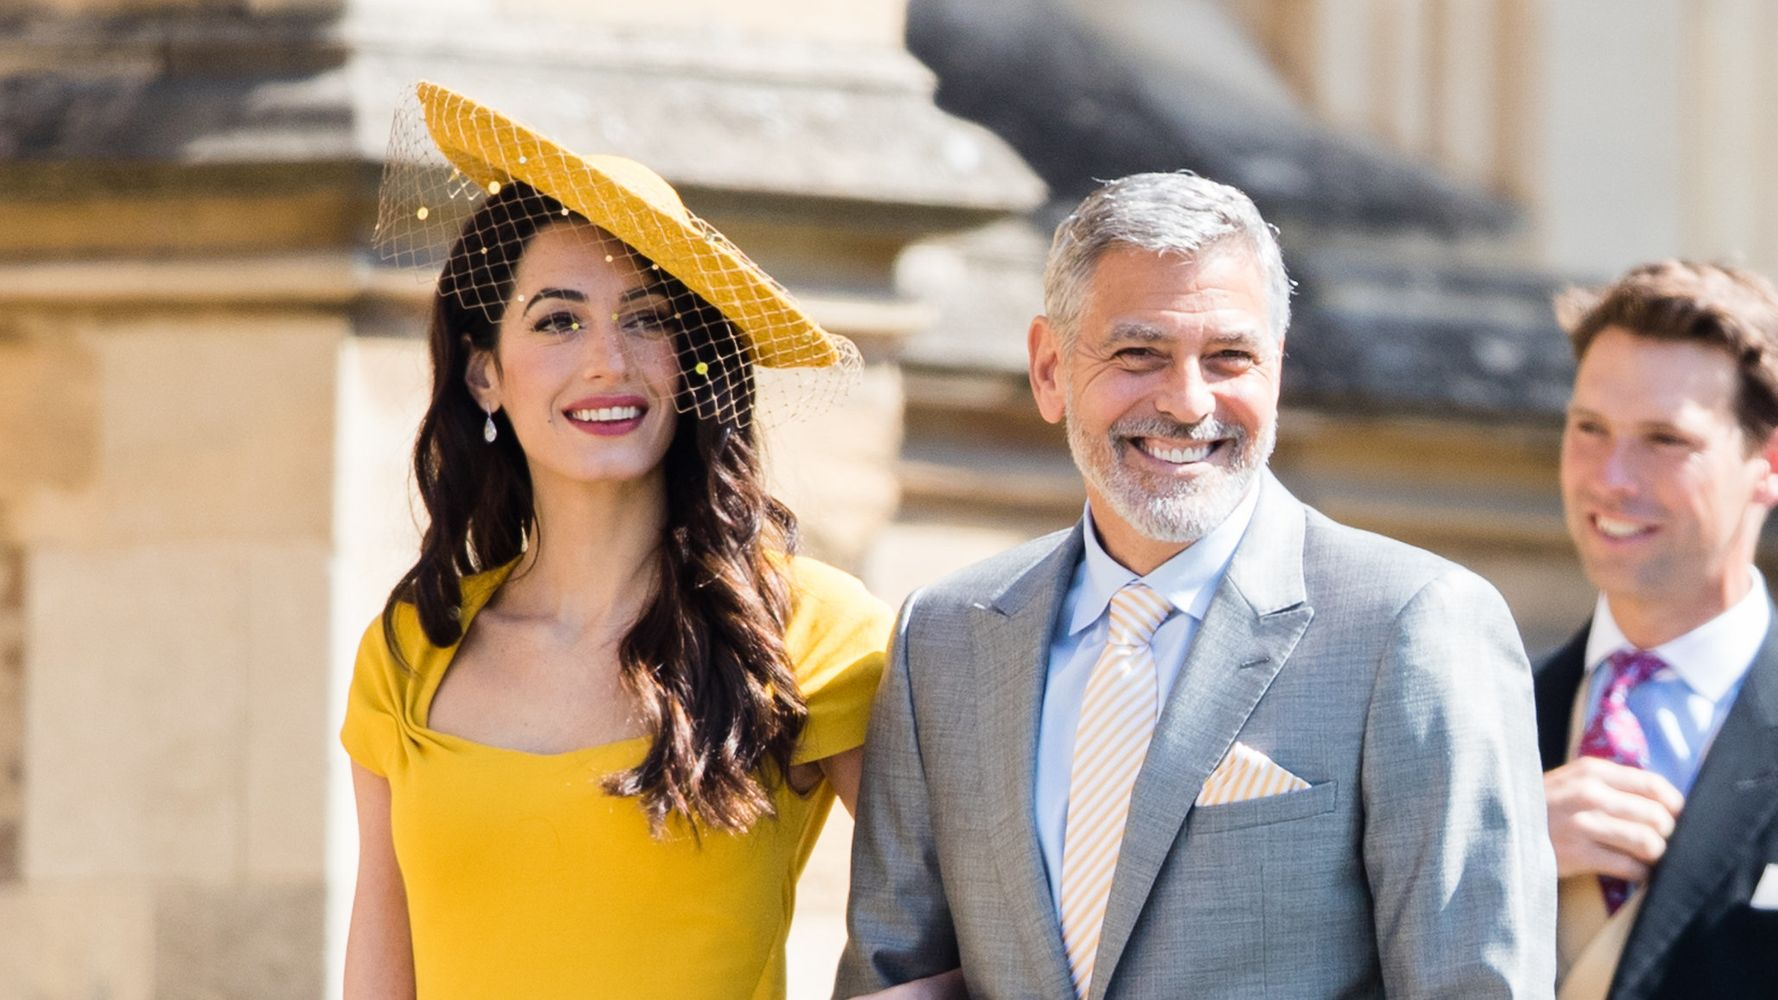 Tom Hardy Royal Wedding.Here S Why Amal Clooney S Royal Wedding Outfit Cost Over Half A